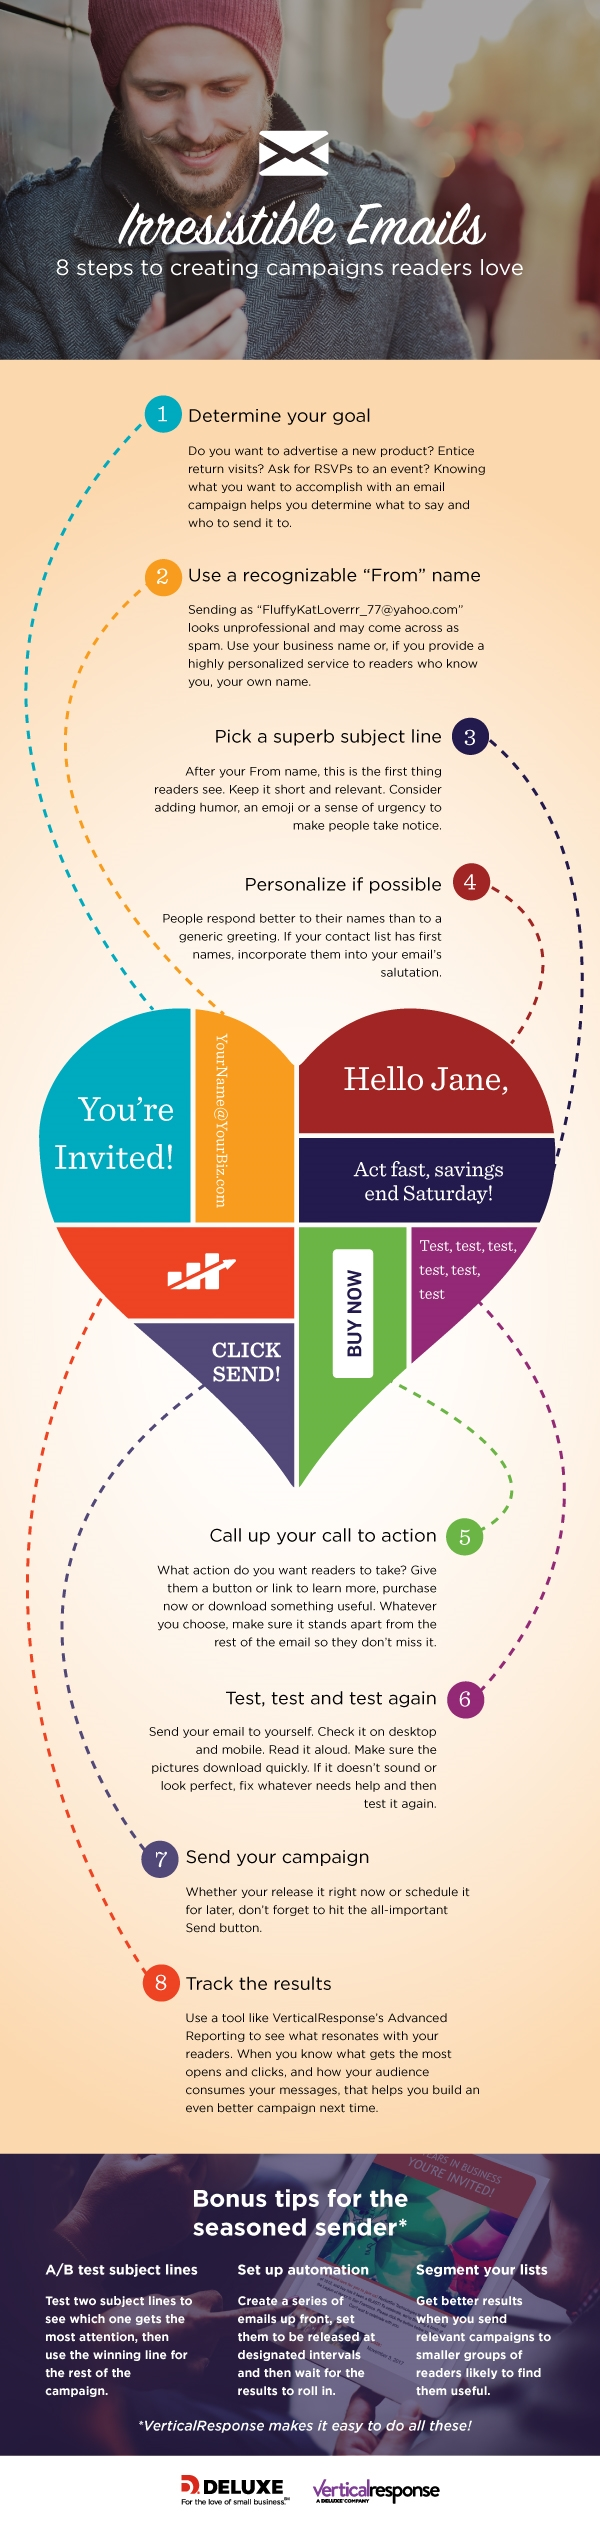 How to Create an Effective Email Marketing Campaign [Infographic]